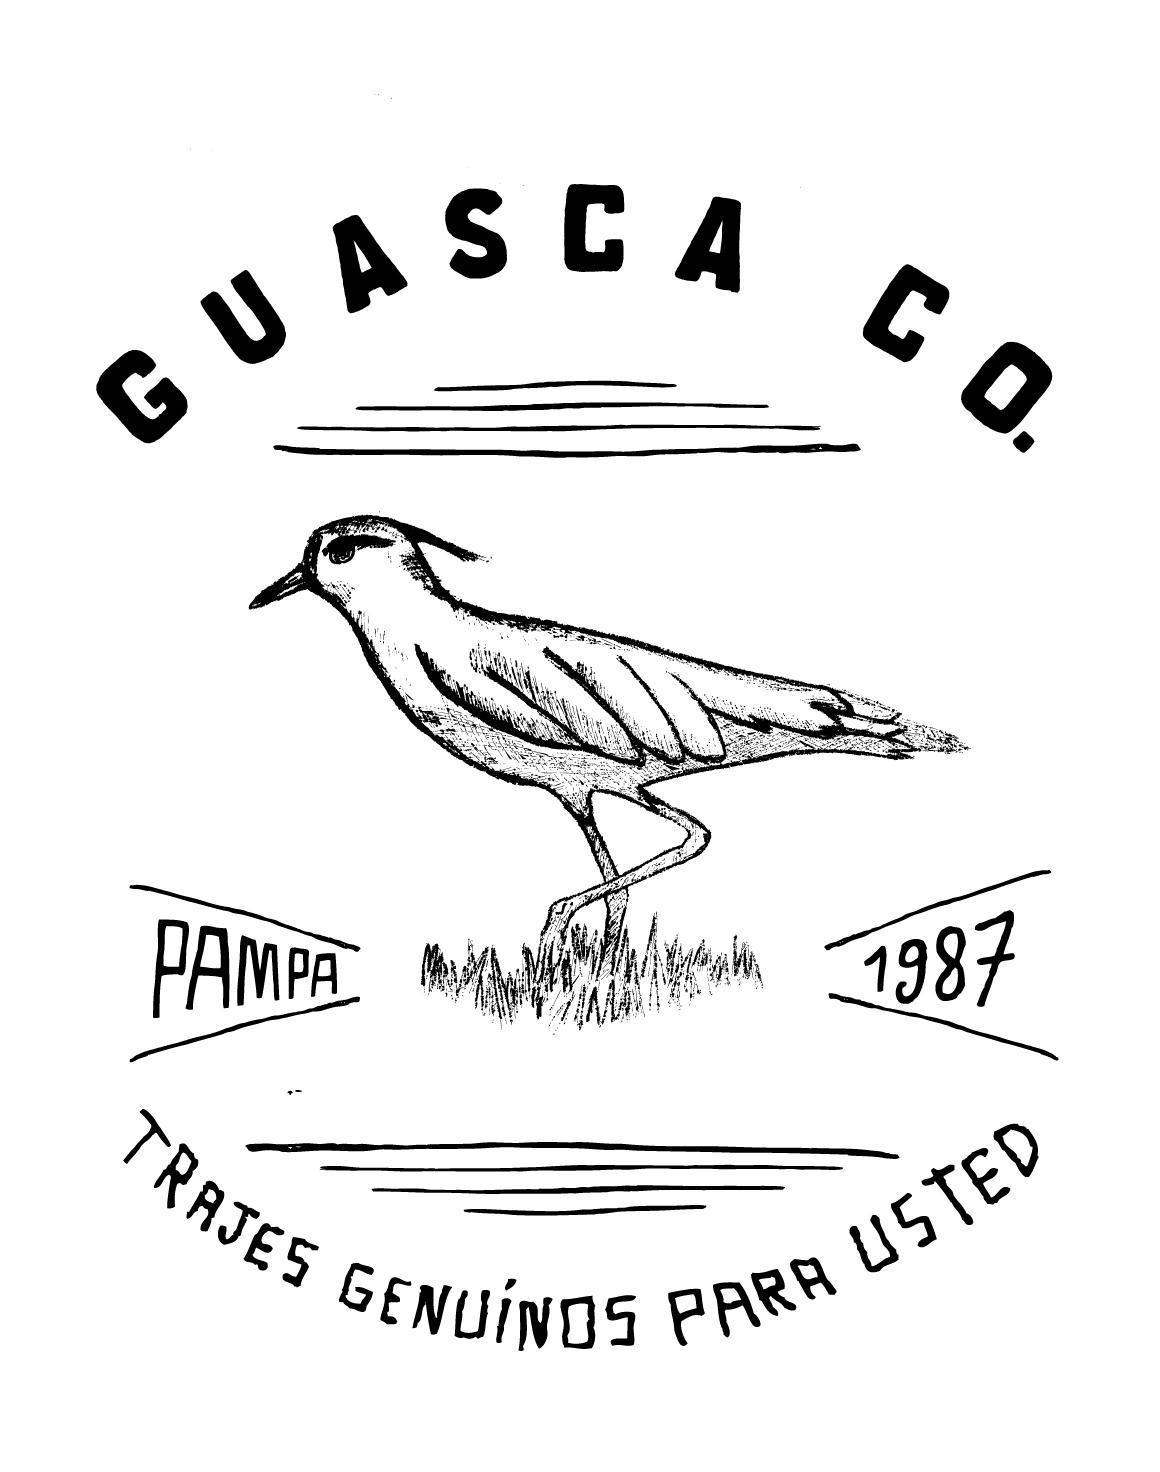 Guasca CO. - image 3 - student project